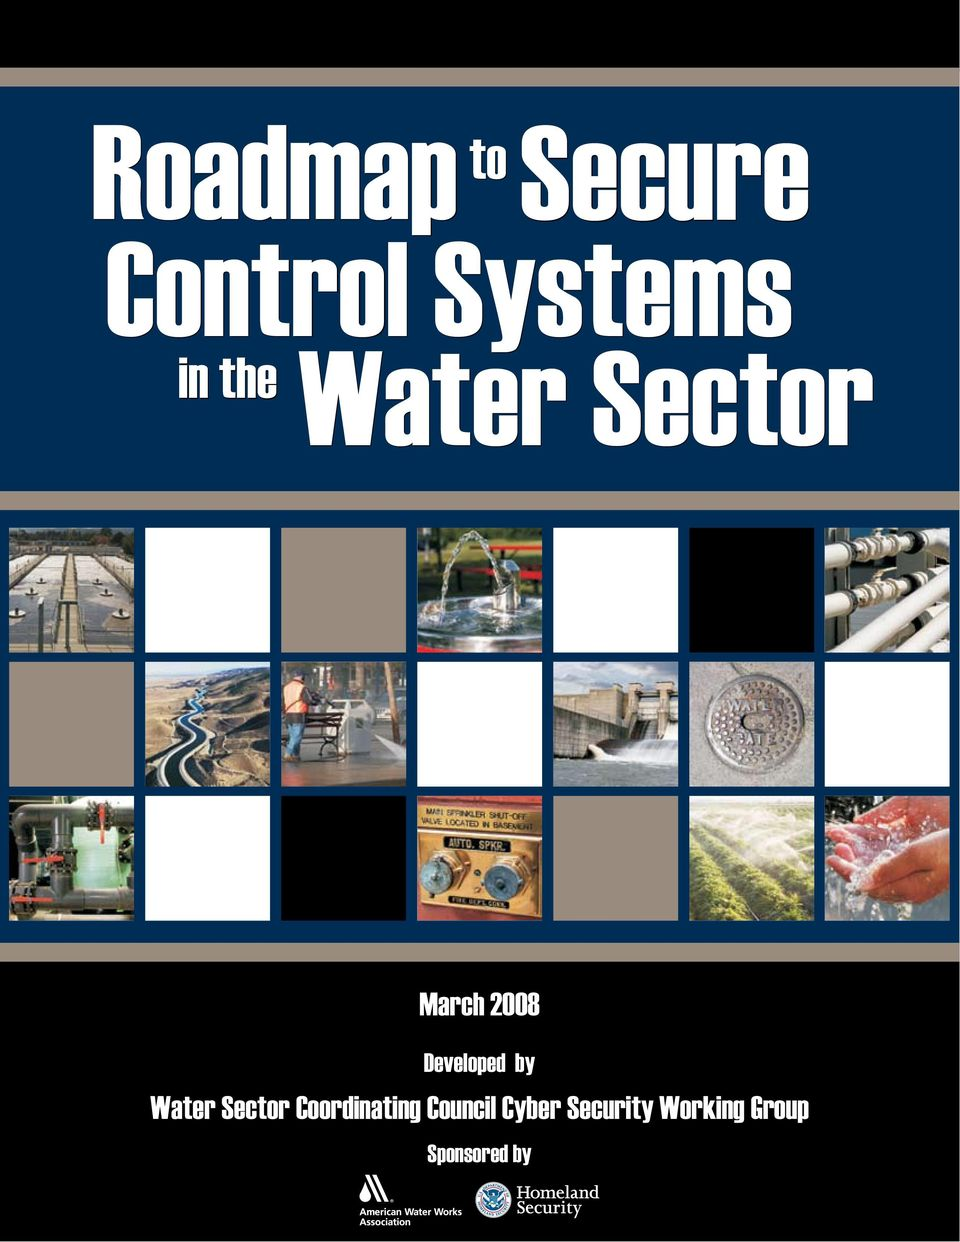 by Water Sector Coordinating Council